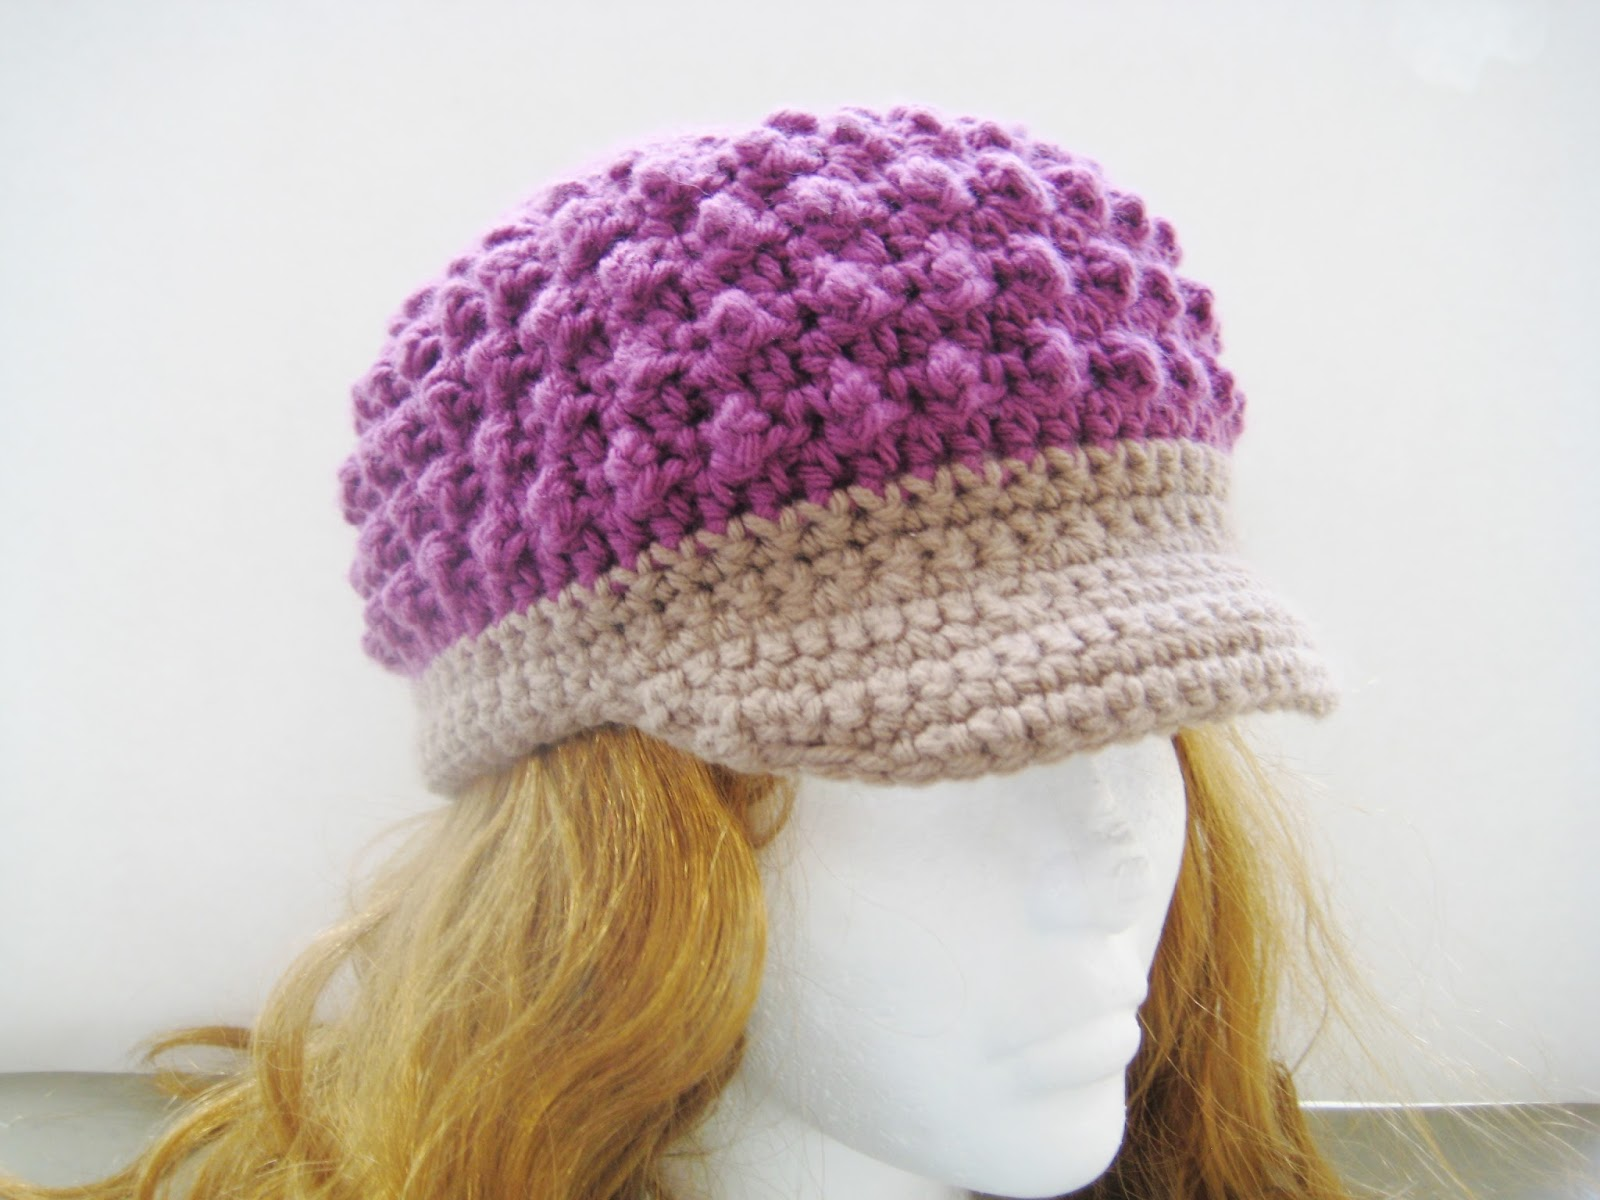 Crochet Baby Hat With Bill Pattern : Crochet Dreamz: Visor Beanie Crochet Pattern for Girls and ...